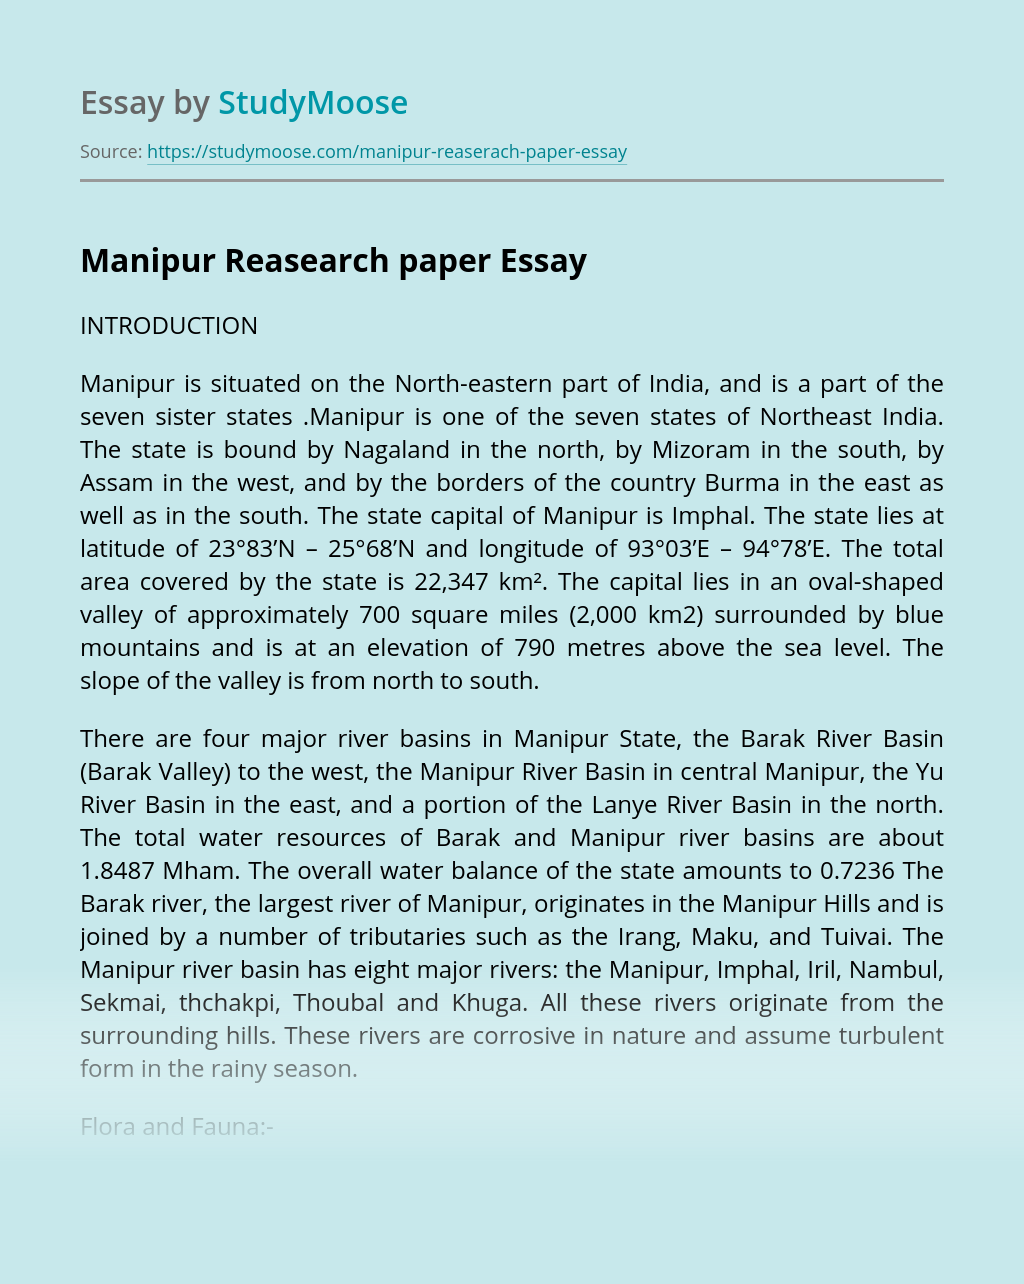 Manipur Reasearch paper